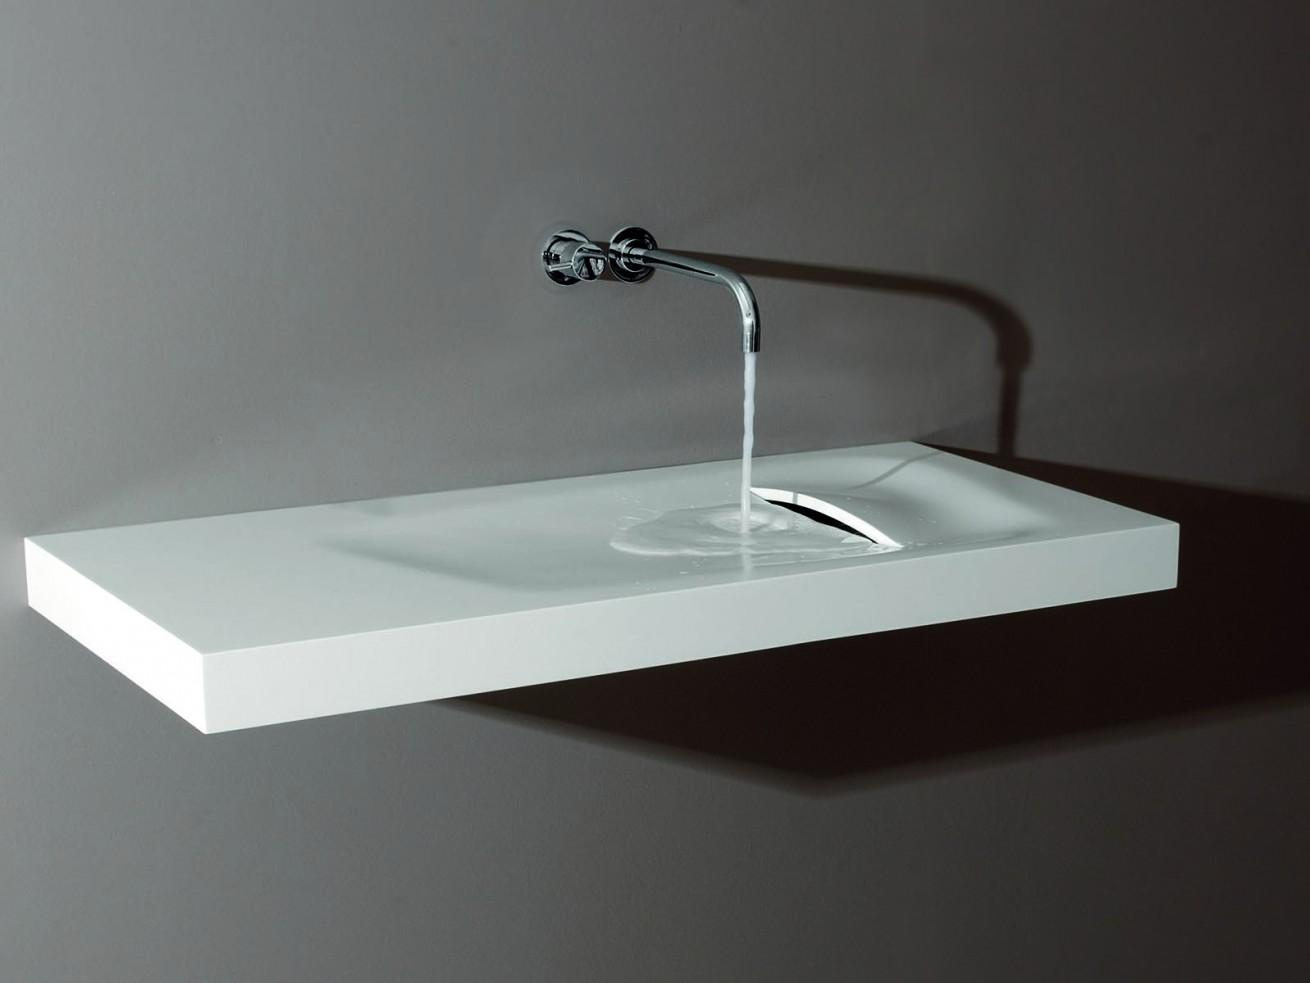 Acrylic Lavabos And Basin Sinks In Bathroom From Corian®